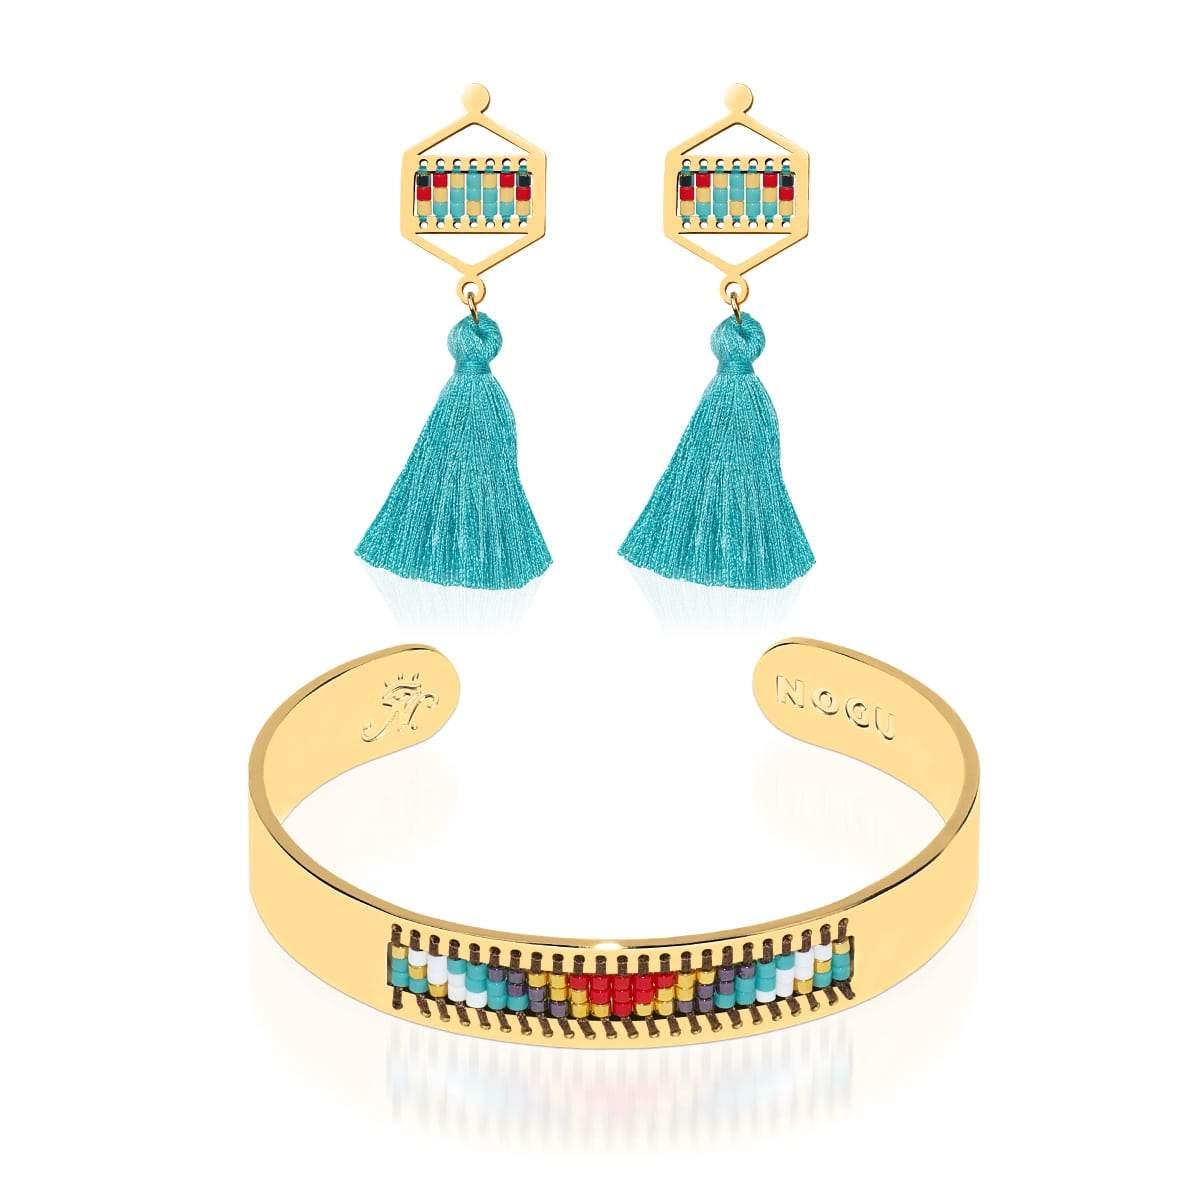 Palos Verdes Estates | 18k Gold | Boho Bangle Fringe Earring Set